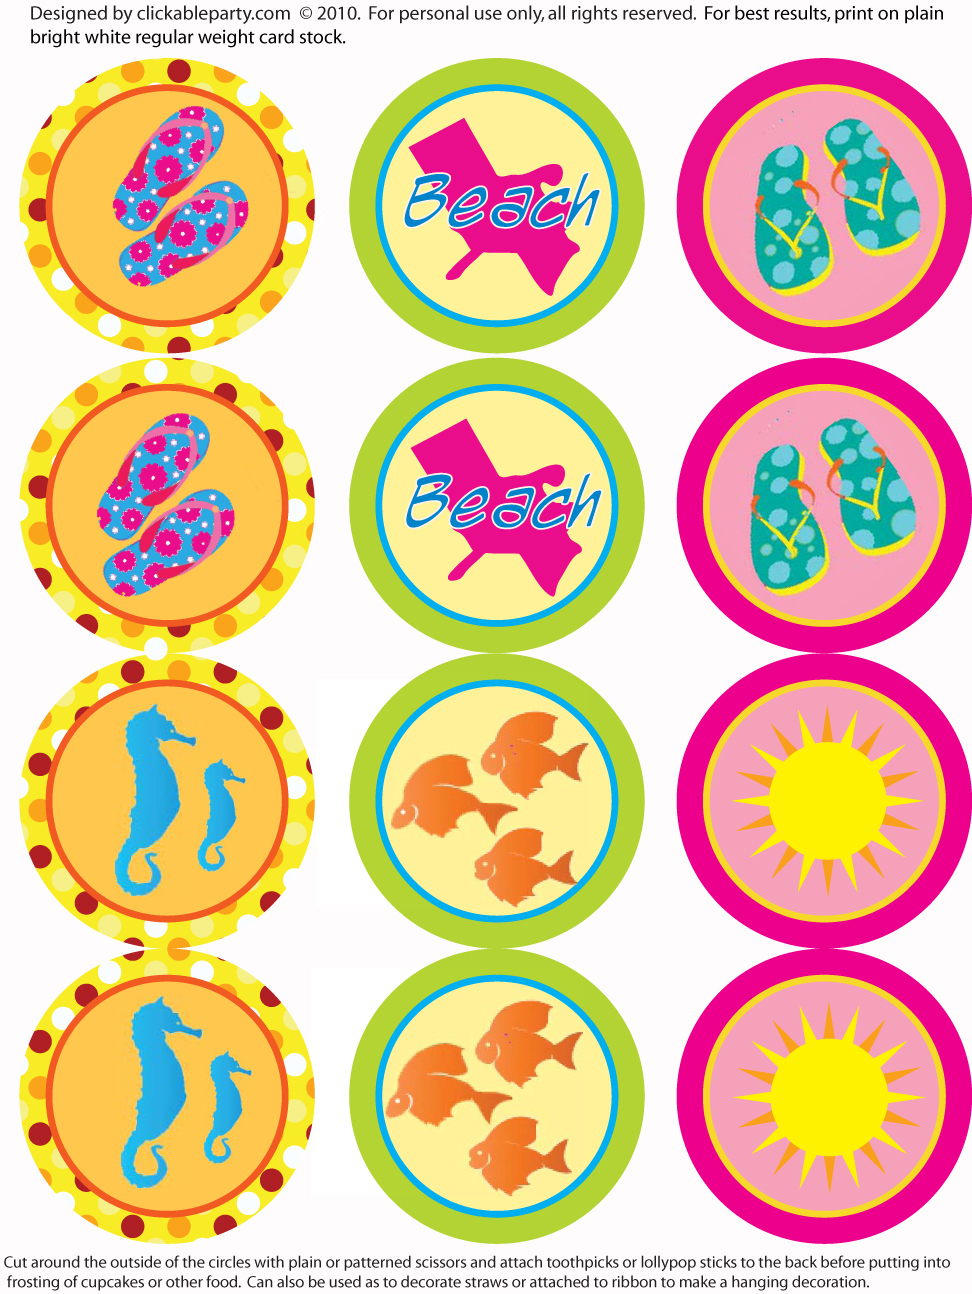 Free Summer Party Printables From Clickable Party | Catch My Party - Free Printable Party Circles